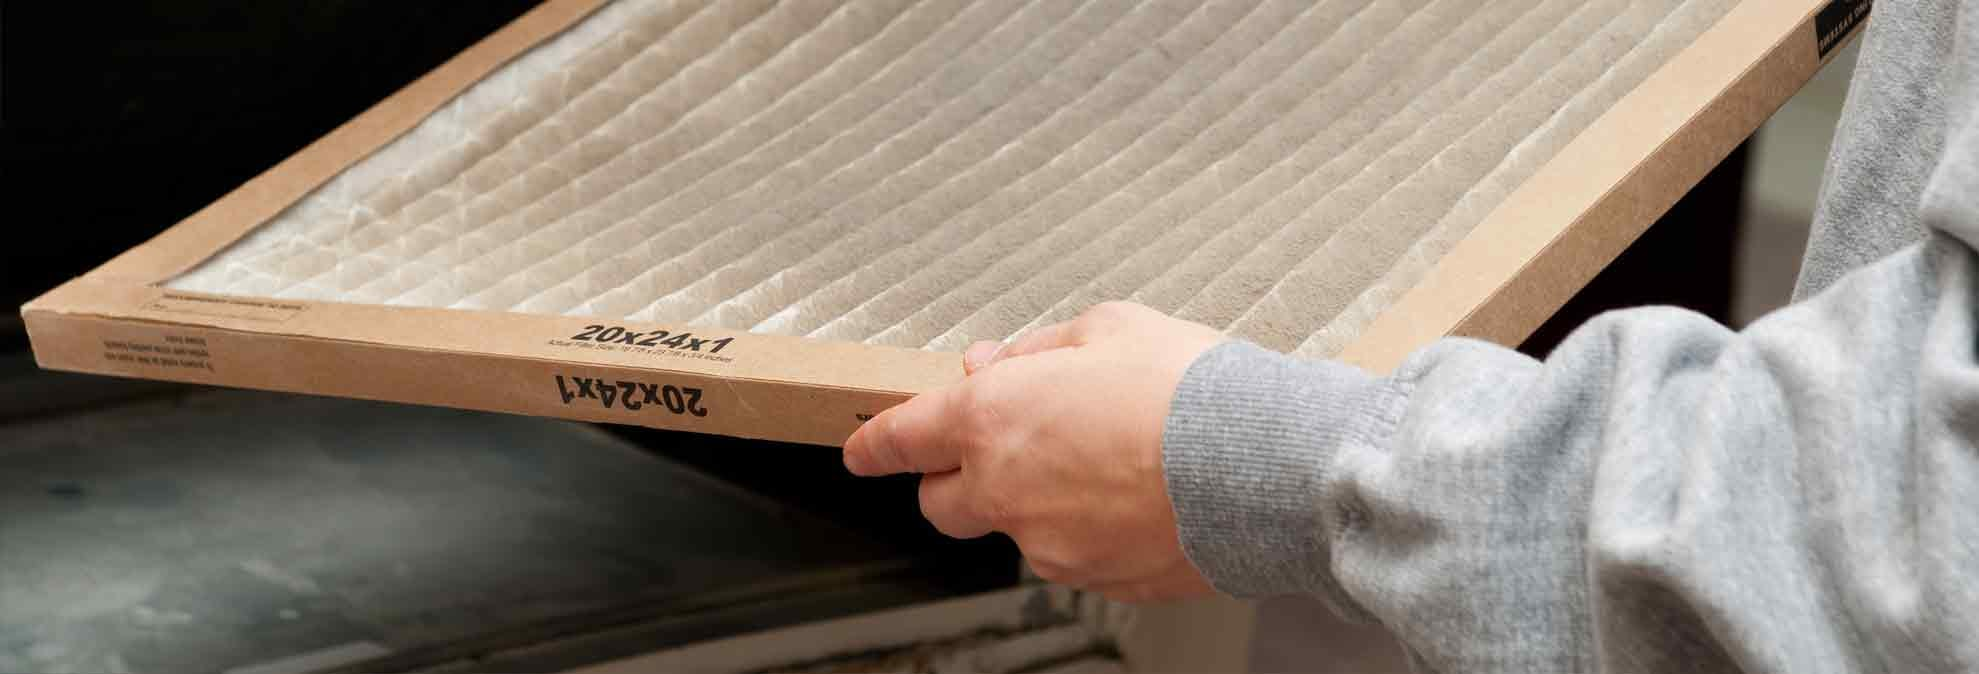 Best furnace air filters for allergies - Best Furnace Air Filters For Allergies 57